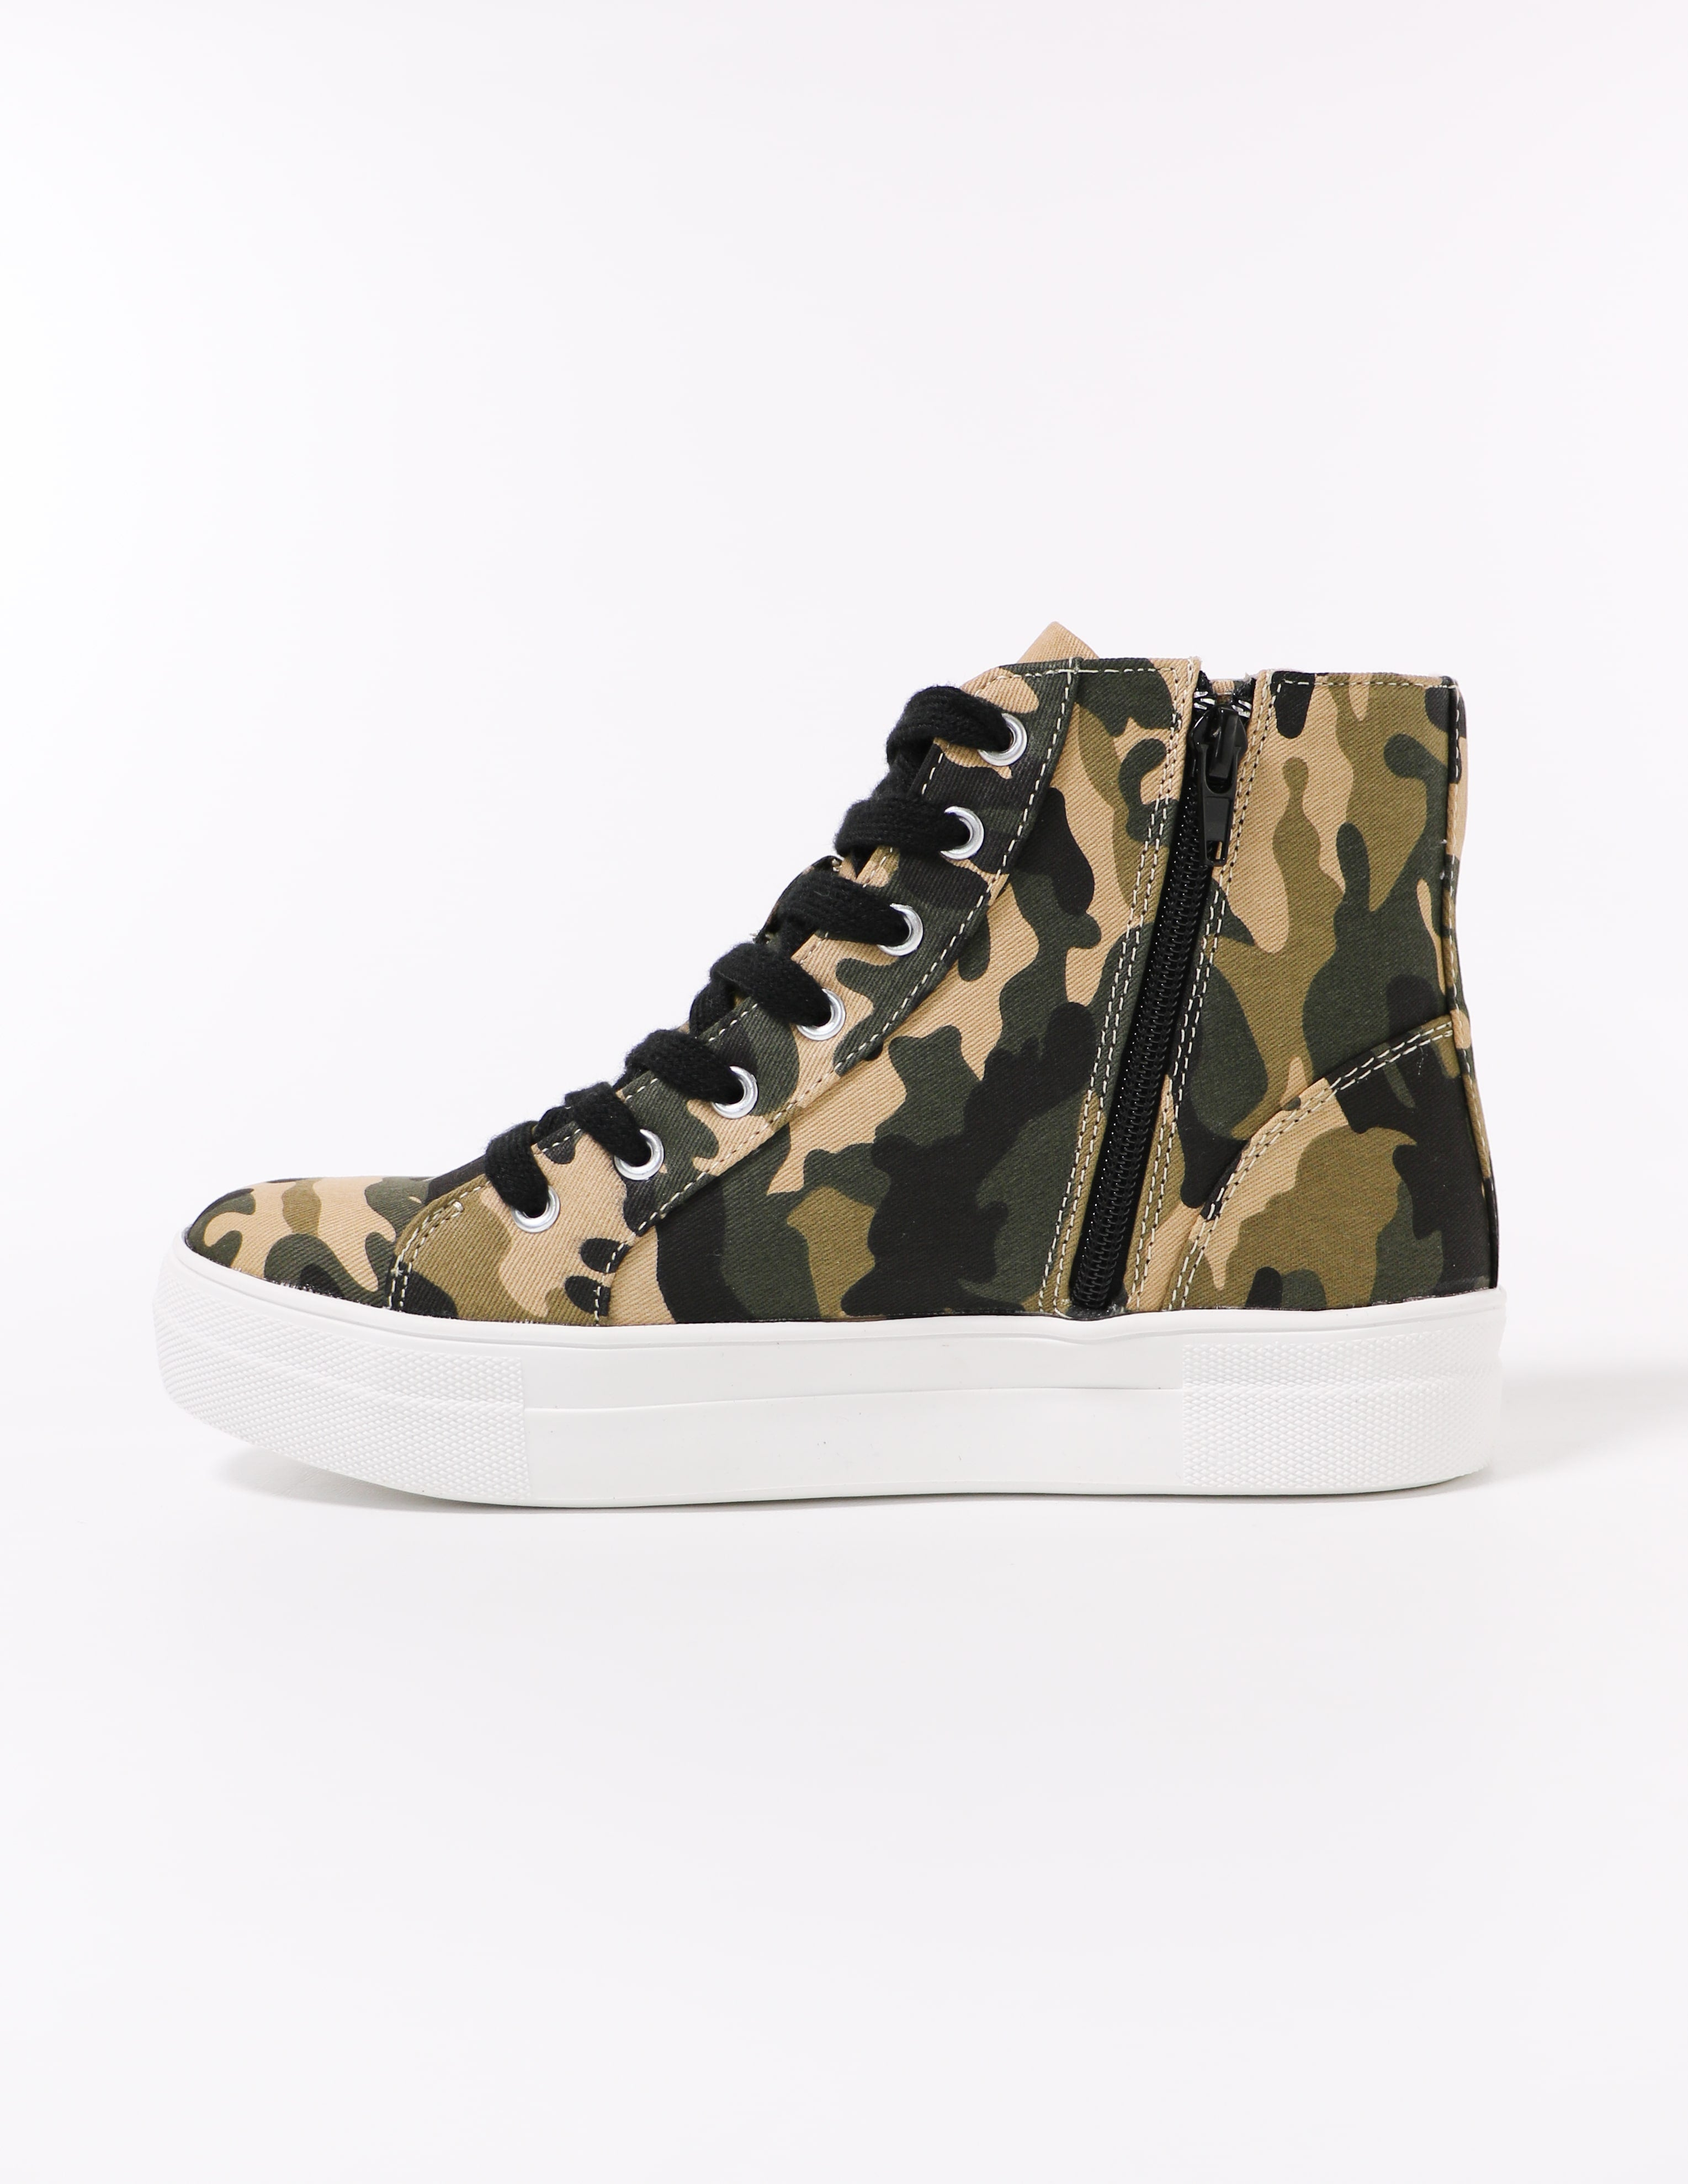 zipper on the camo to top it off high top soda sneaker